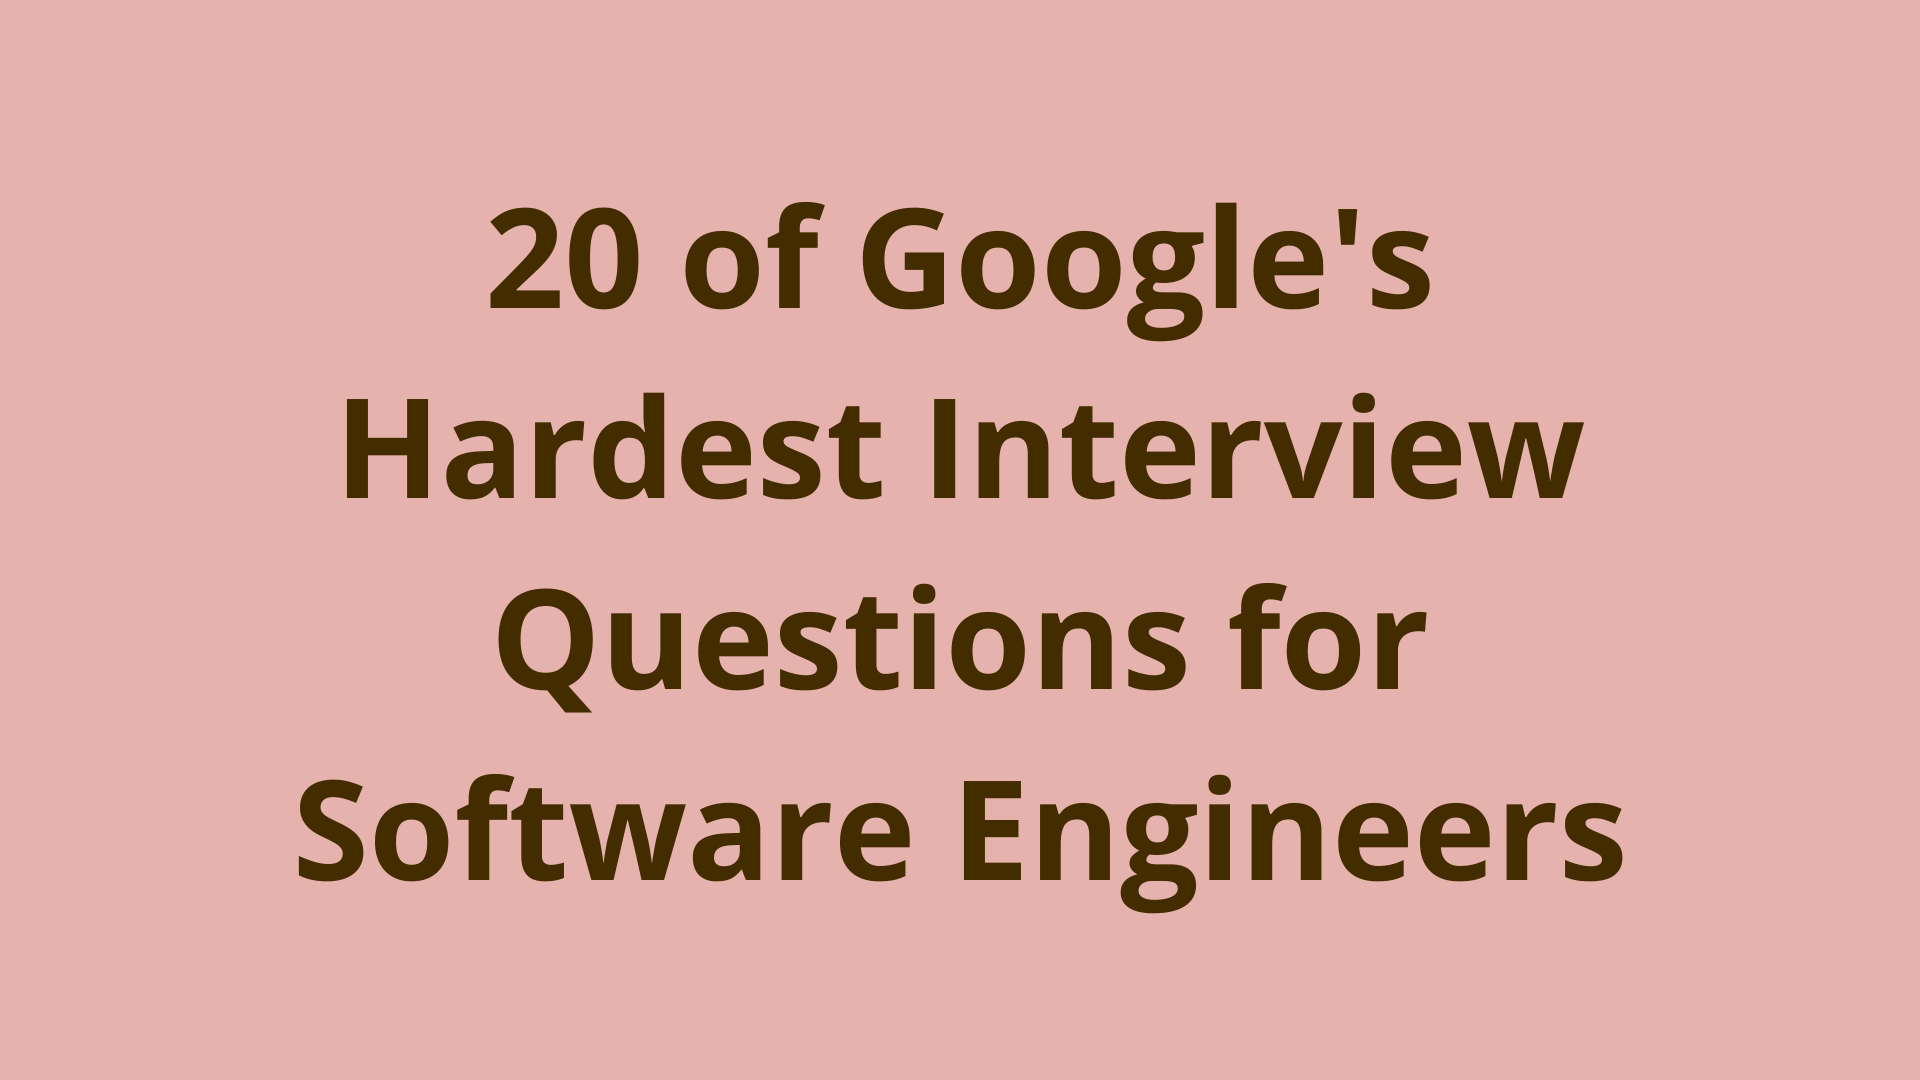 Image of 20 of Google's hardest interview questions for software engineers